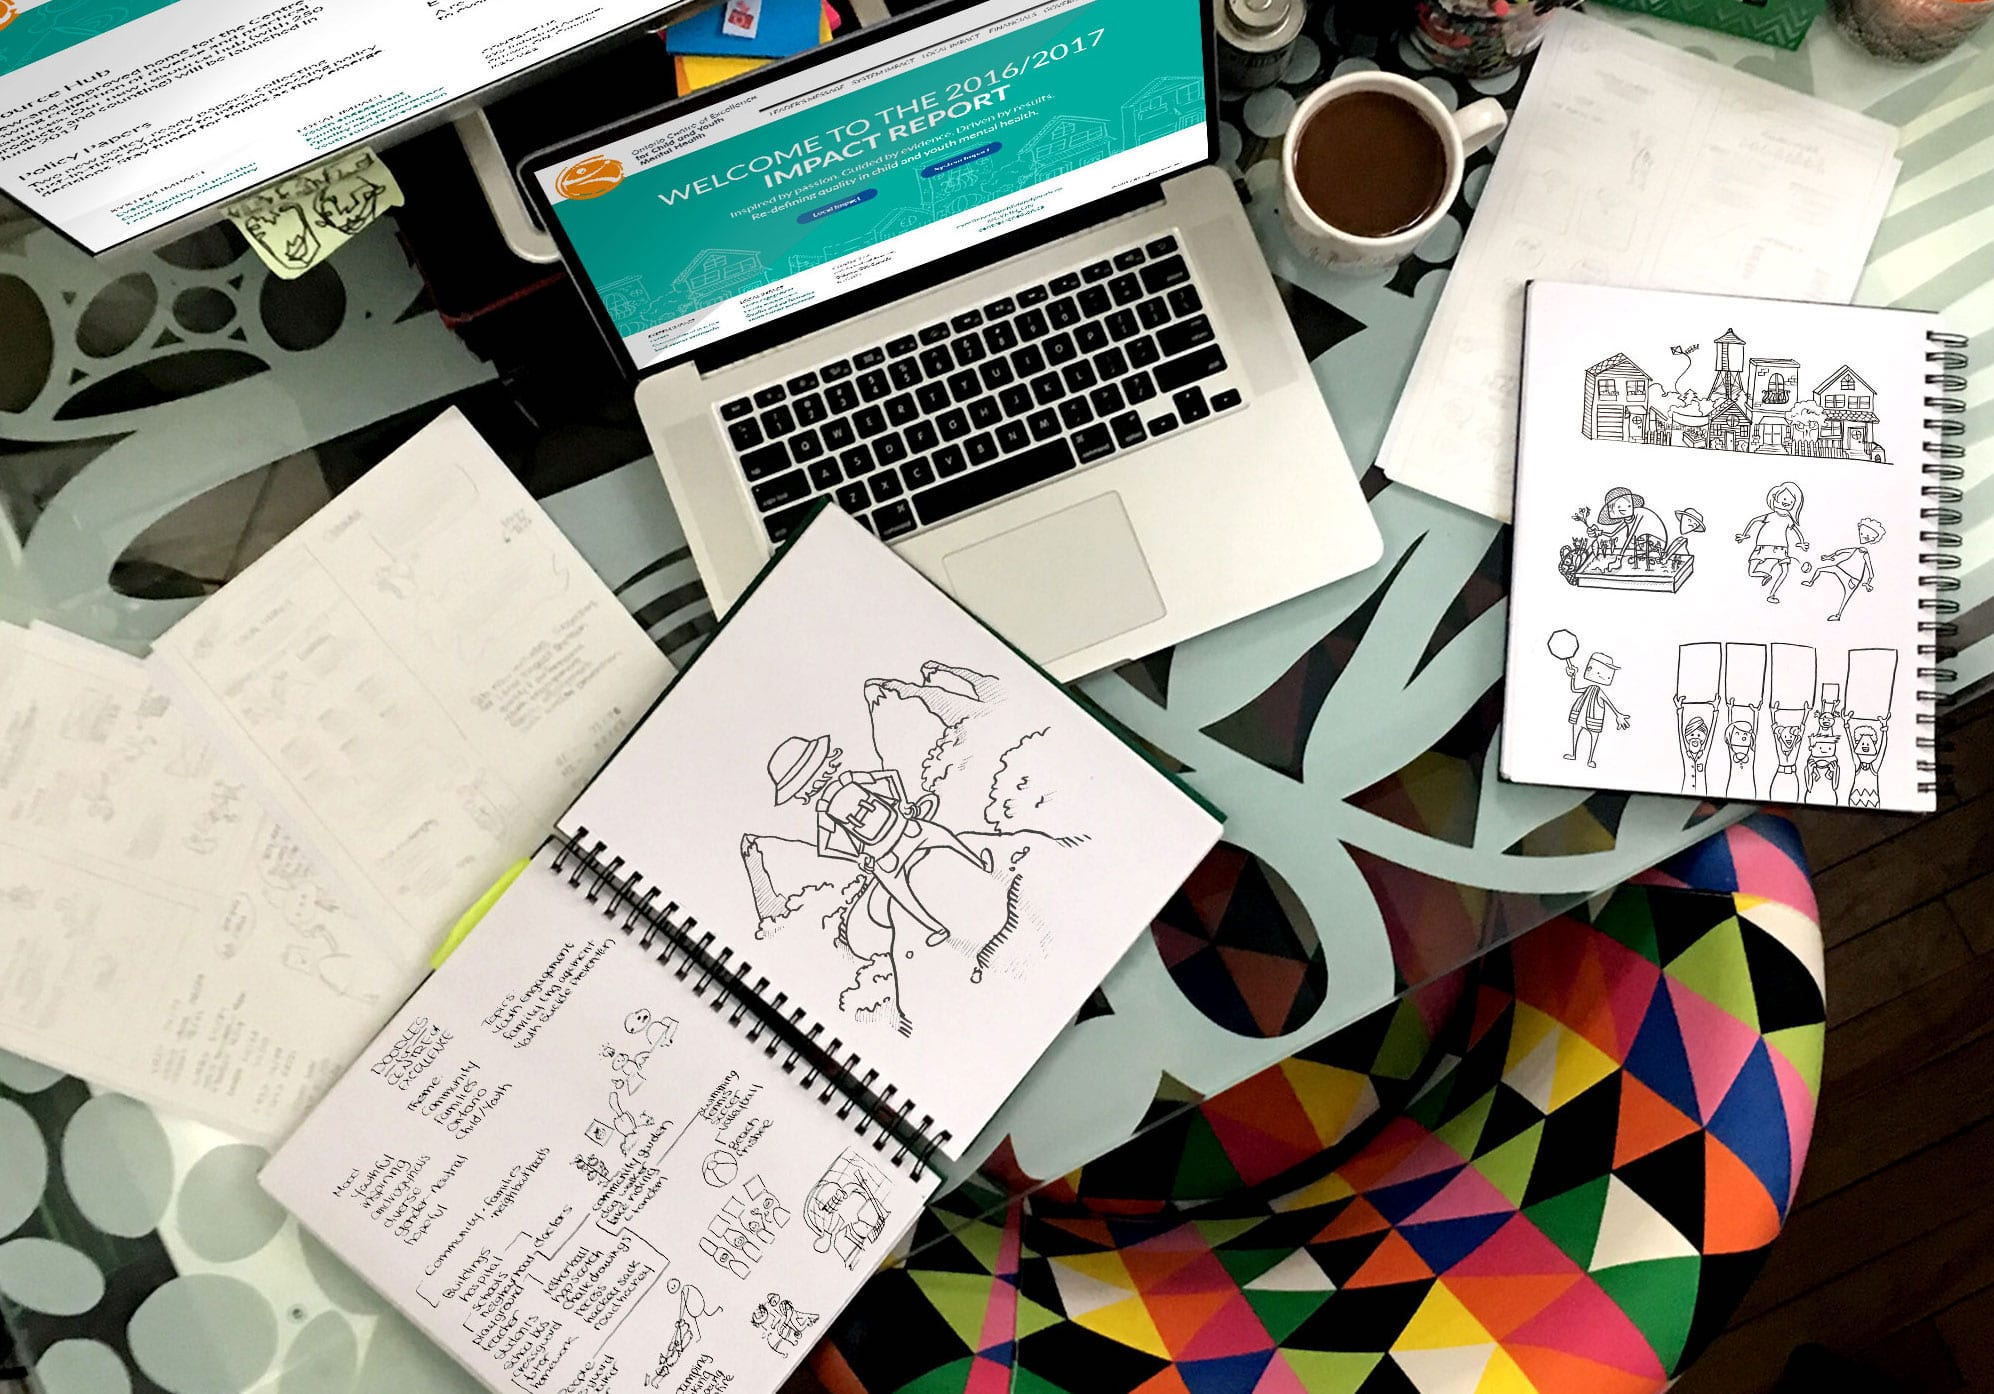 shows the designer Lore Berg's home office, where she worked on the website wireframes and illustrations for the report